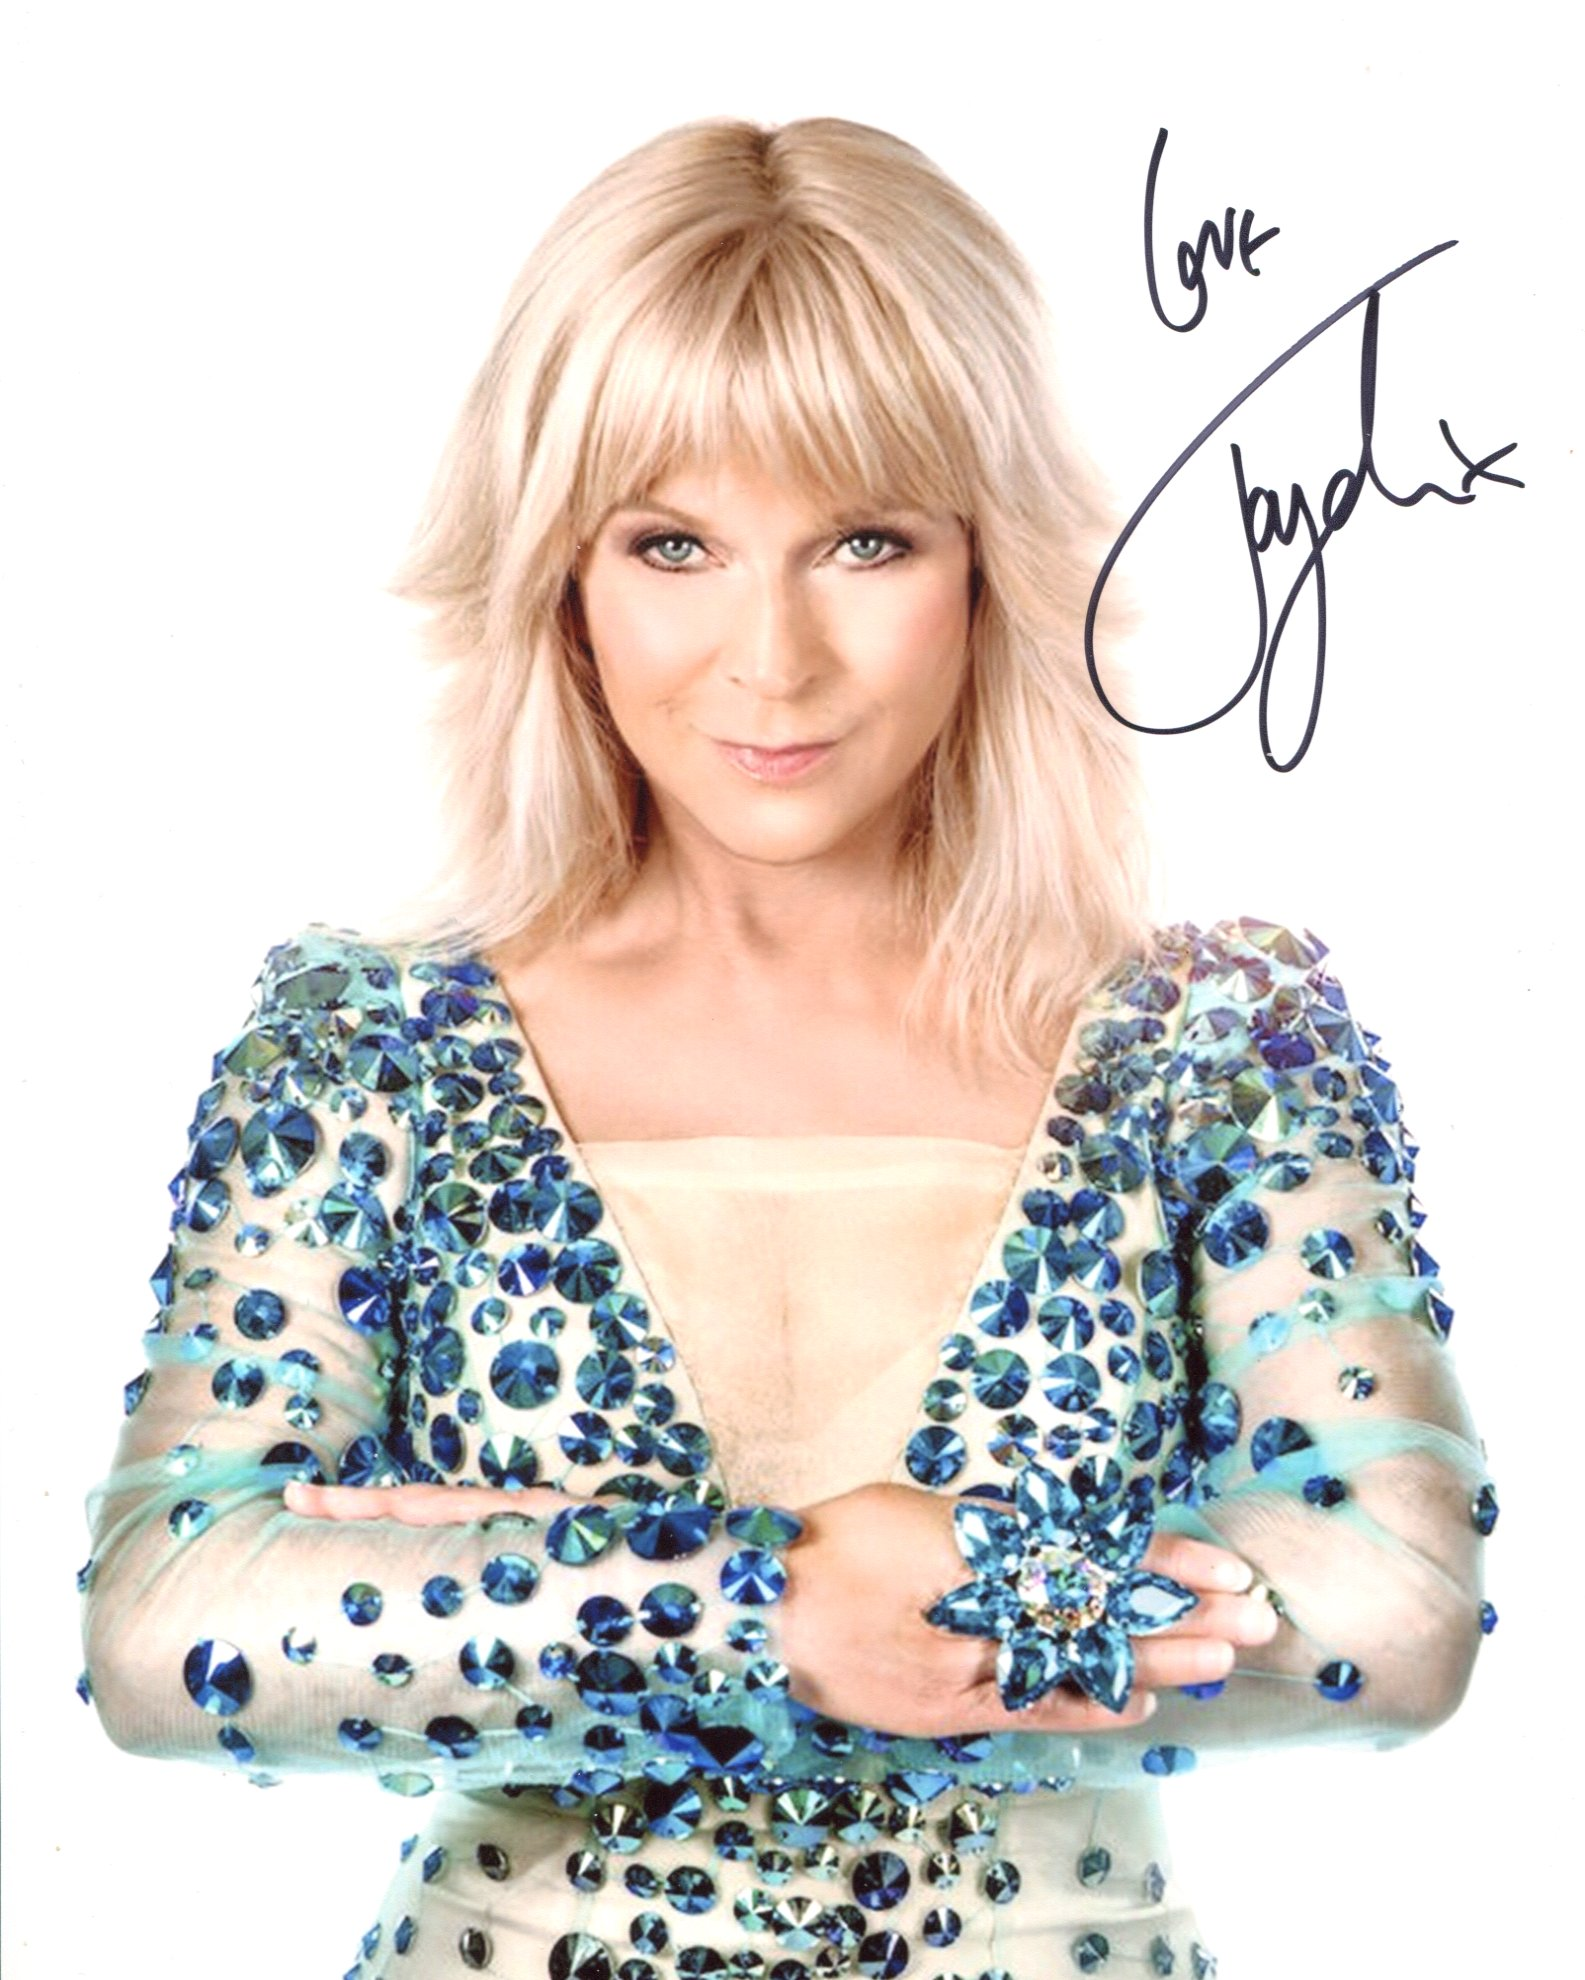 Toyah. Nice 8x10 photo signed by pop star and Quadrophenia actress Toyah Willcox. Good condition.